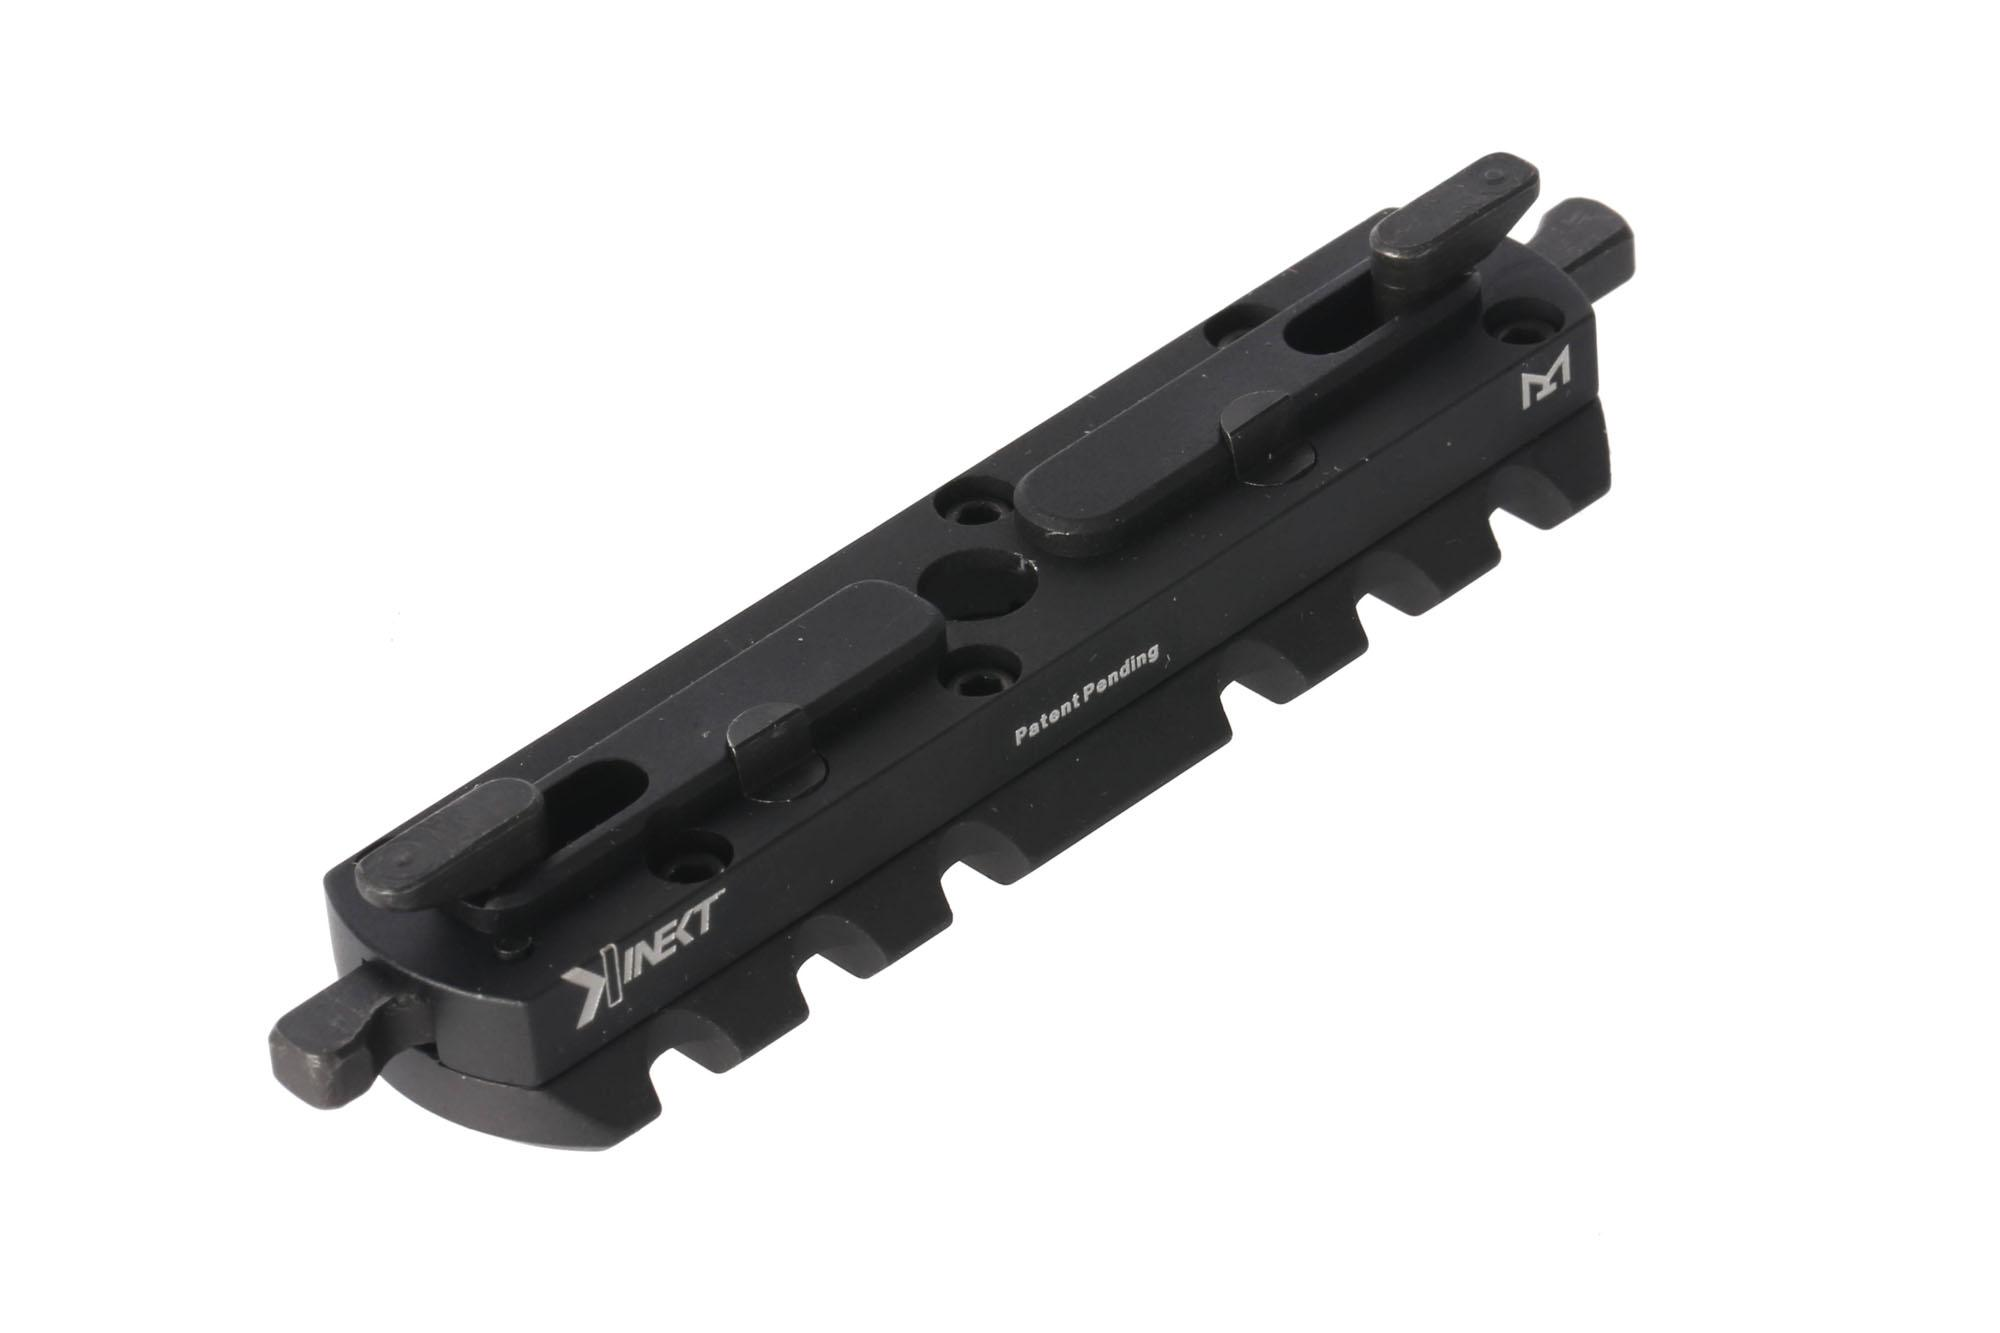 Kinetic Devlepment's Kinect Extended M-LOK swivel mount displaying quick detach system